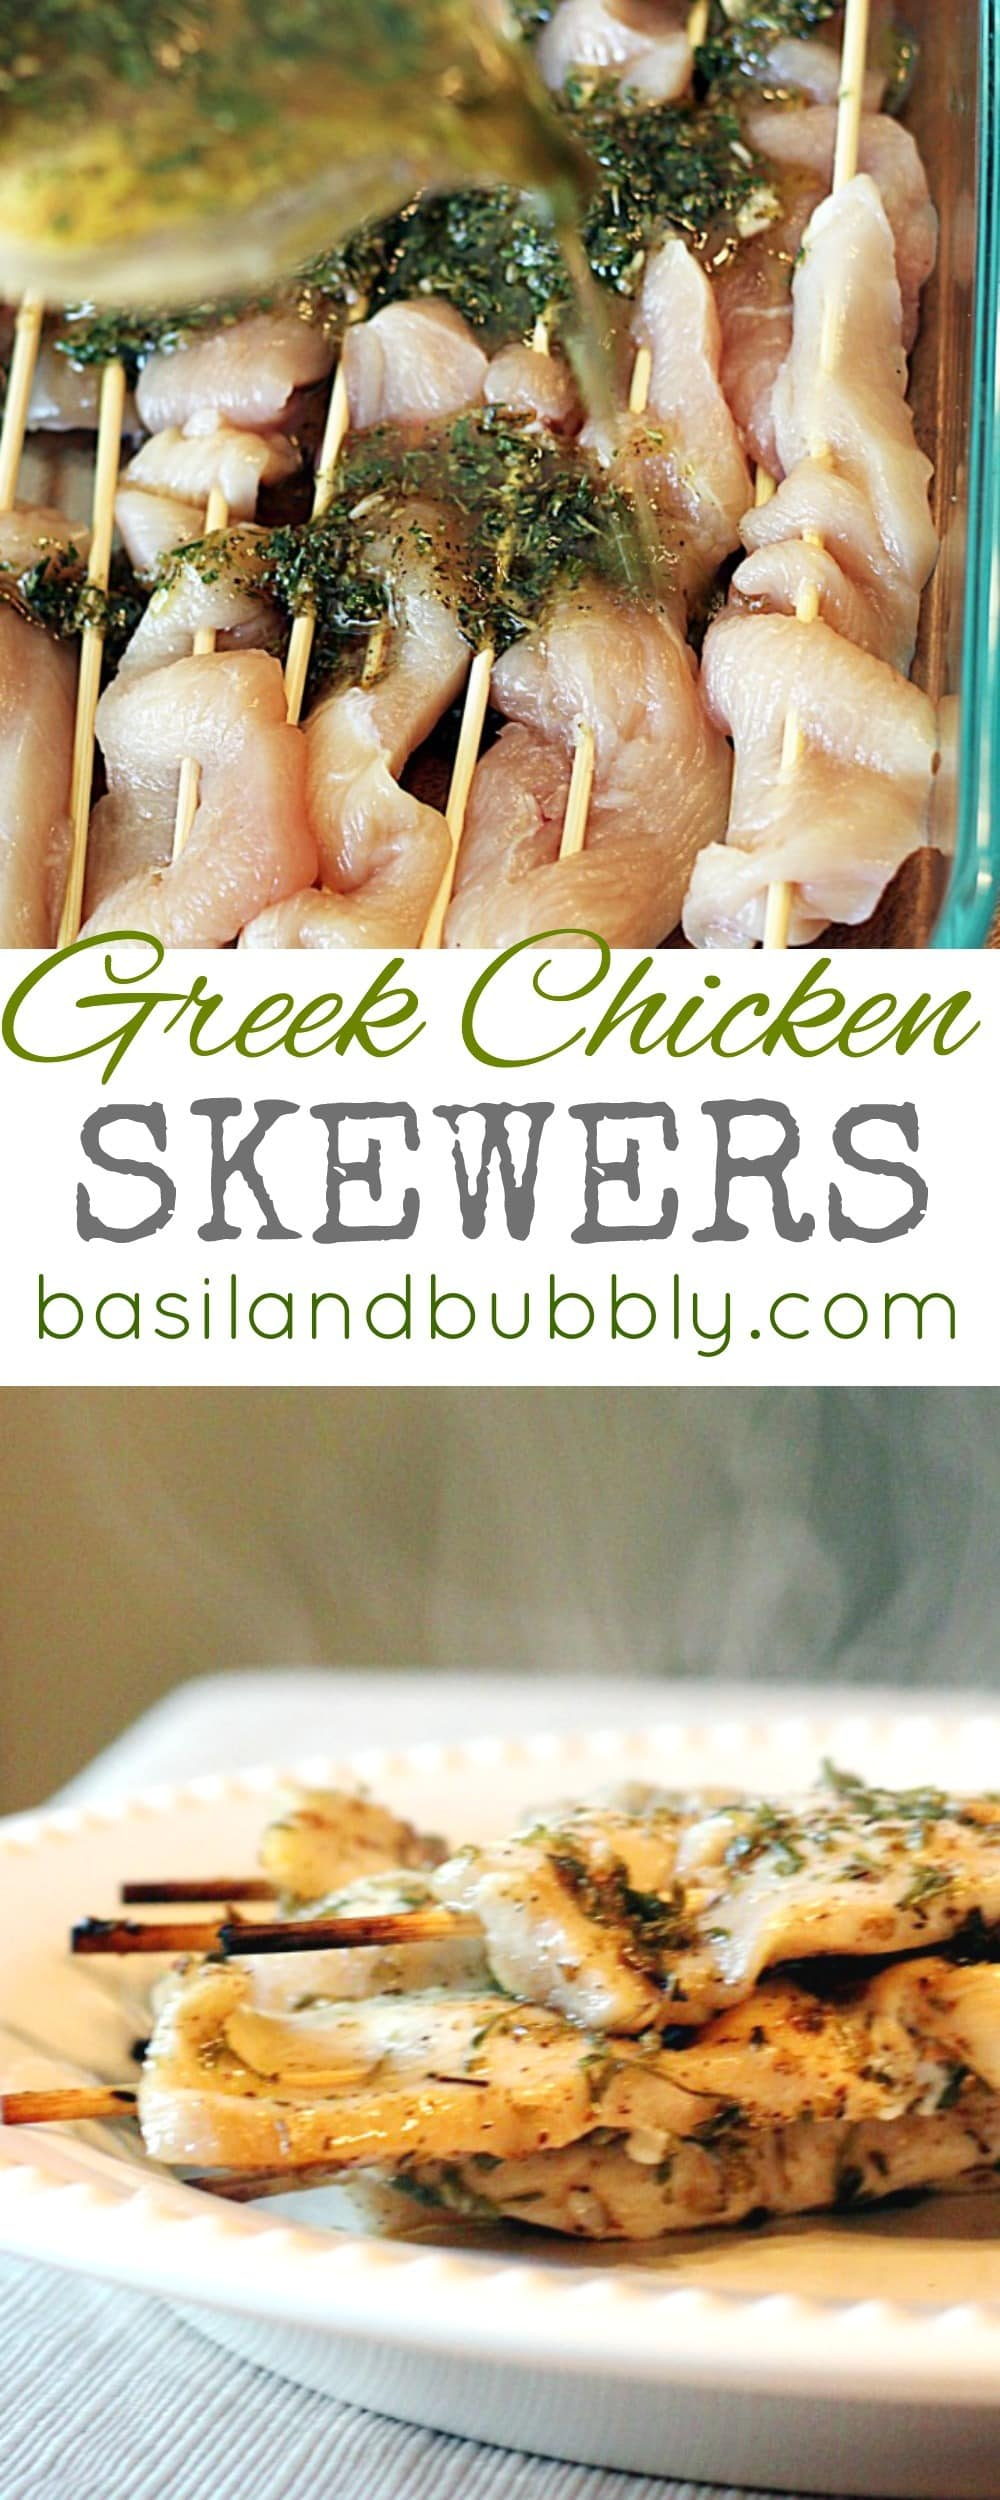 Another healthy, clean, boneless, skinless chicken recipe from Basil and Bubbly: Greek Chicken Skewers